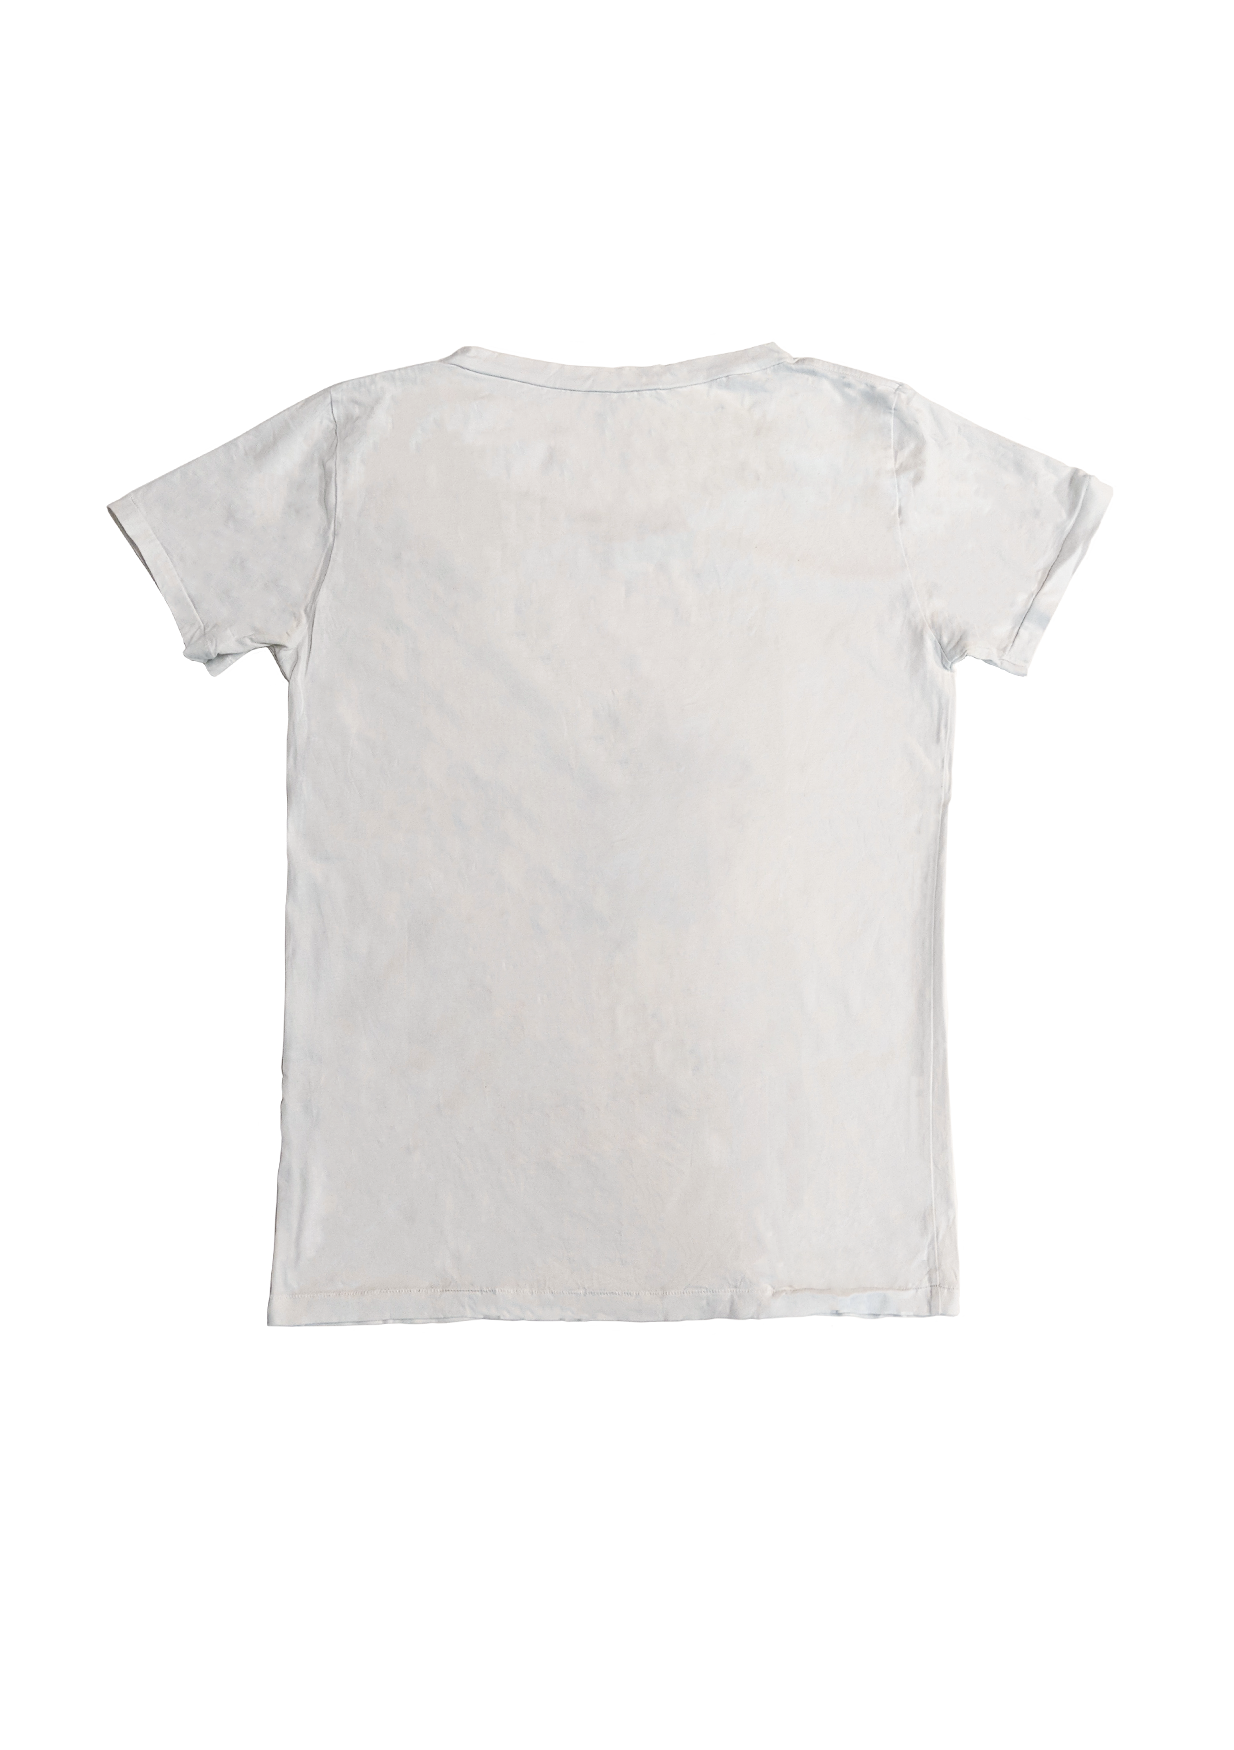 AW12 'In Isolation' MMX tee - white